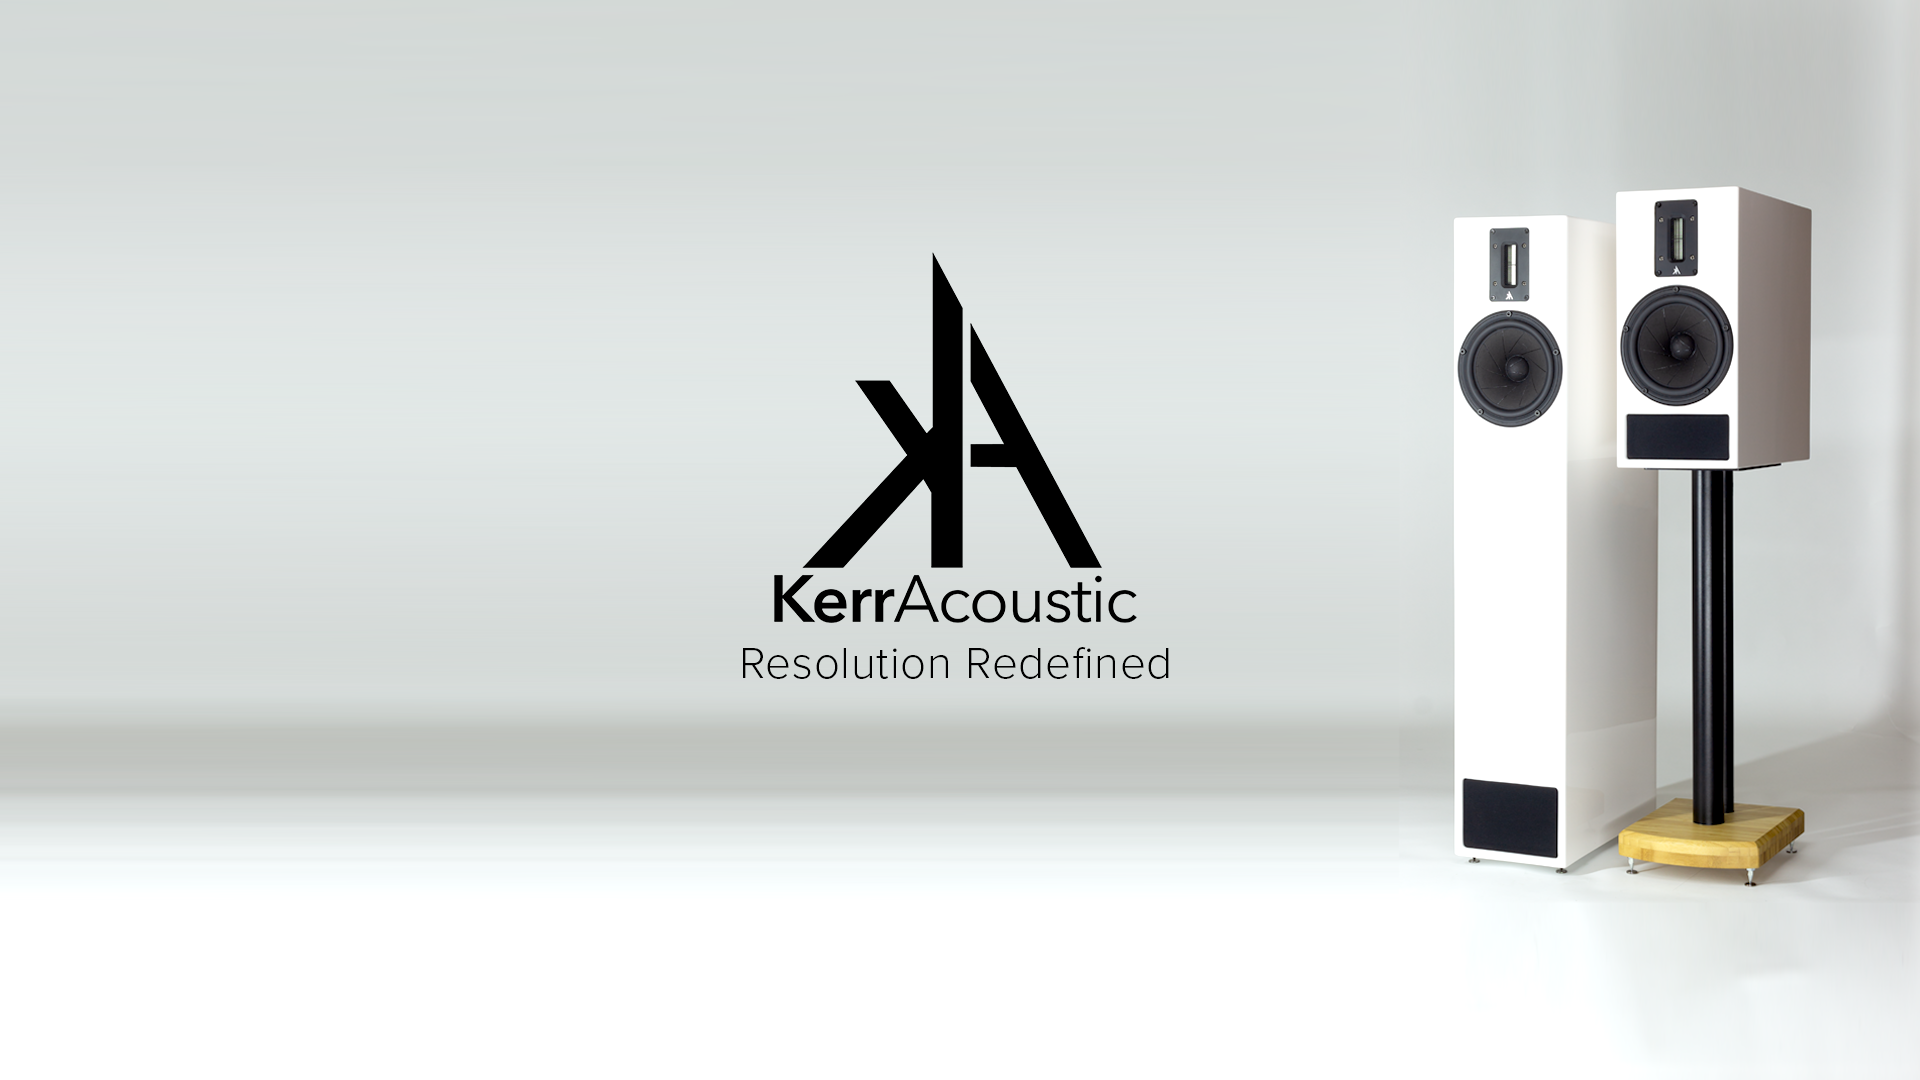 Kerr Acoustic K100 & K300 MKII Speakers available from Kazbar Systems